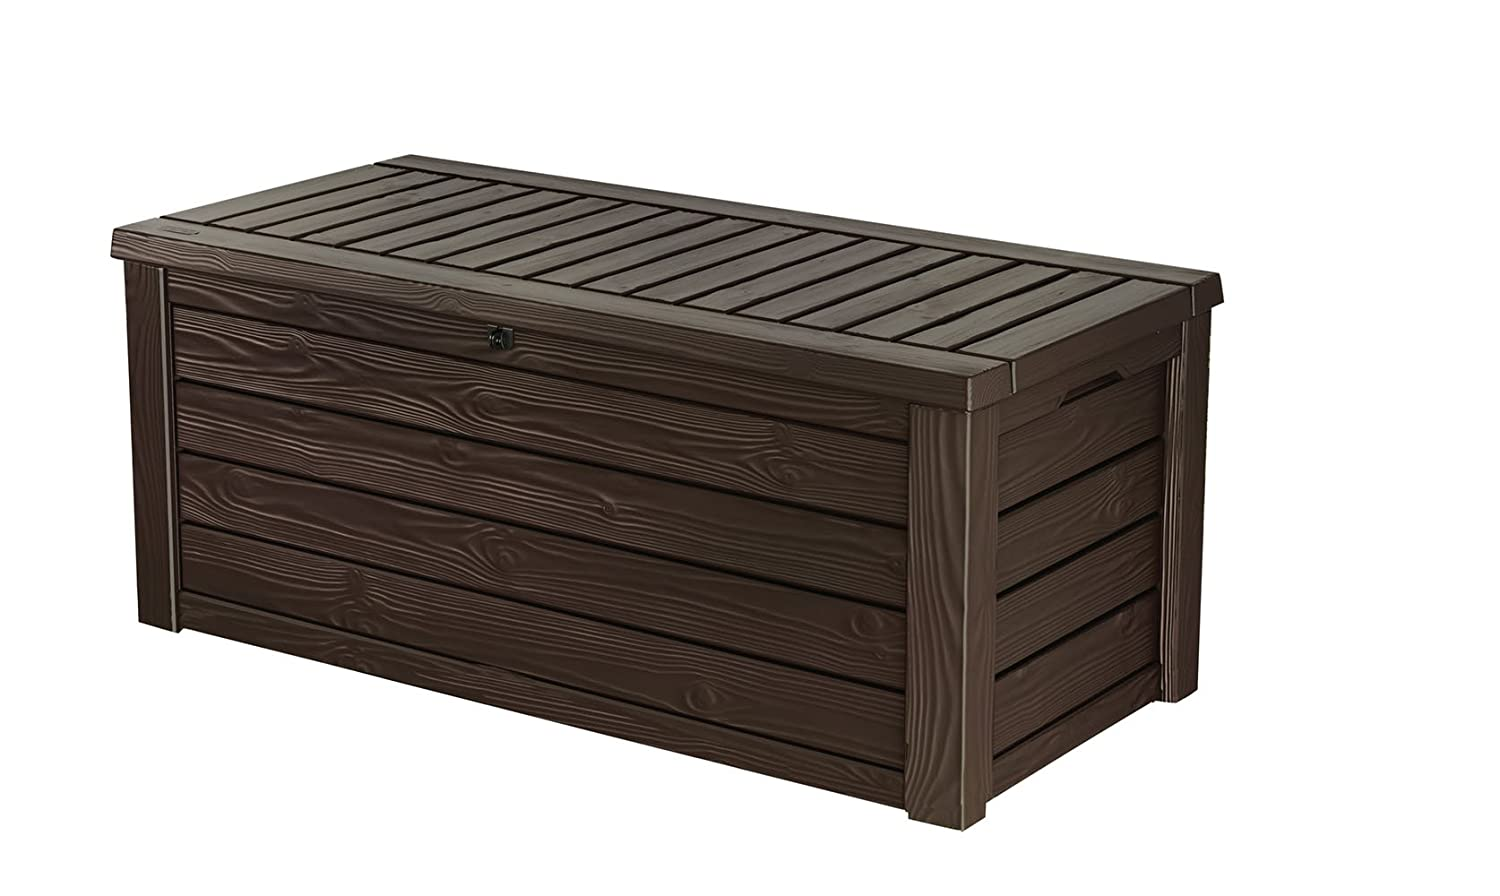 Amazon.com : Keter Westwood Plastic Deck Storage Container Box Outdoor  Patio Garden Furniture 150 Gal, Brown : Patio, Lawn U0026 Garden